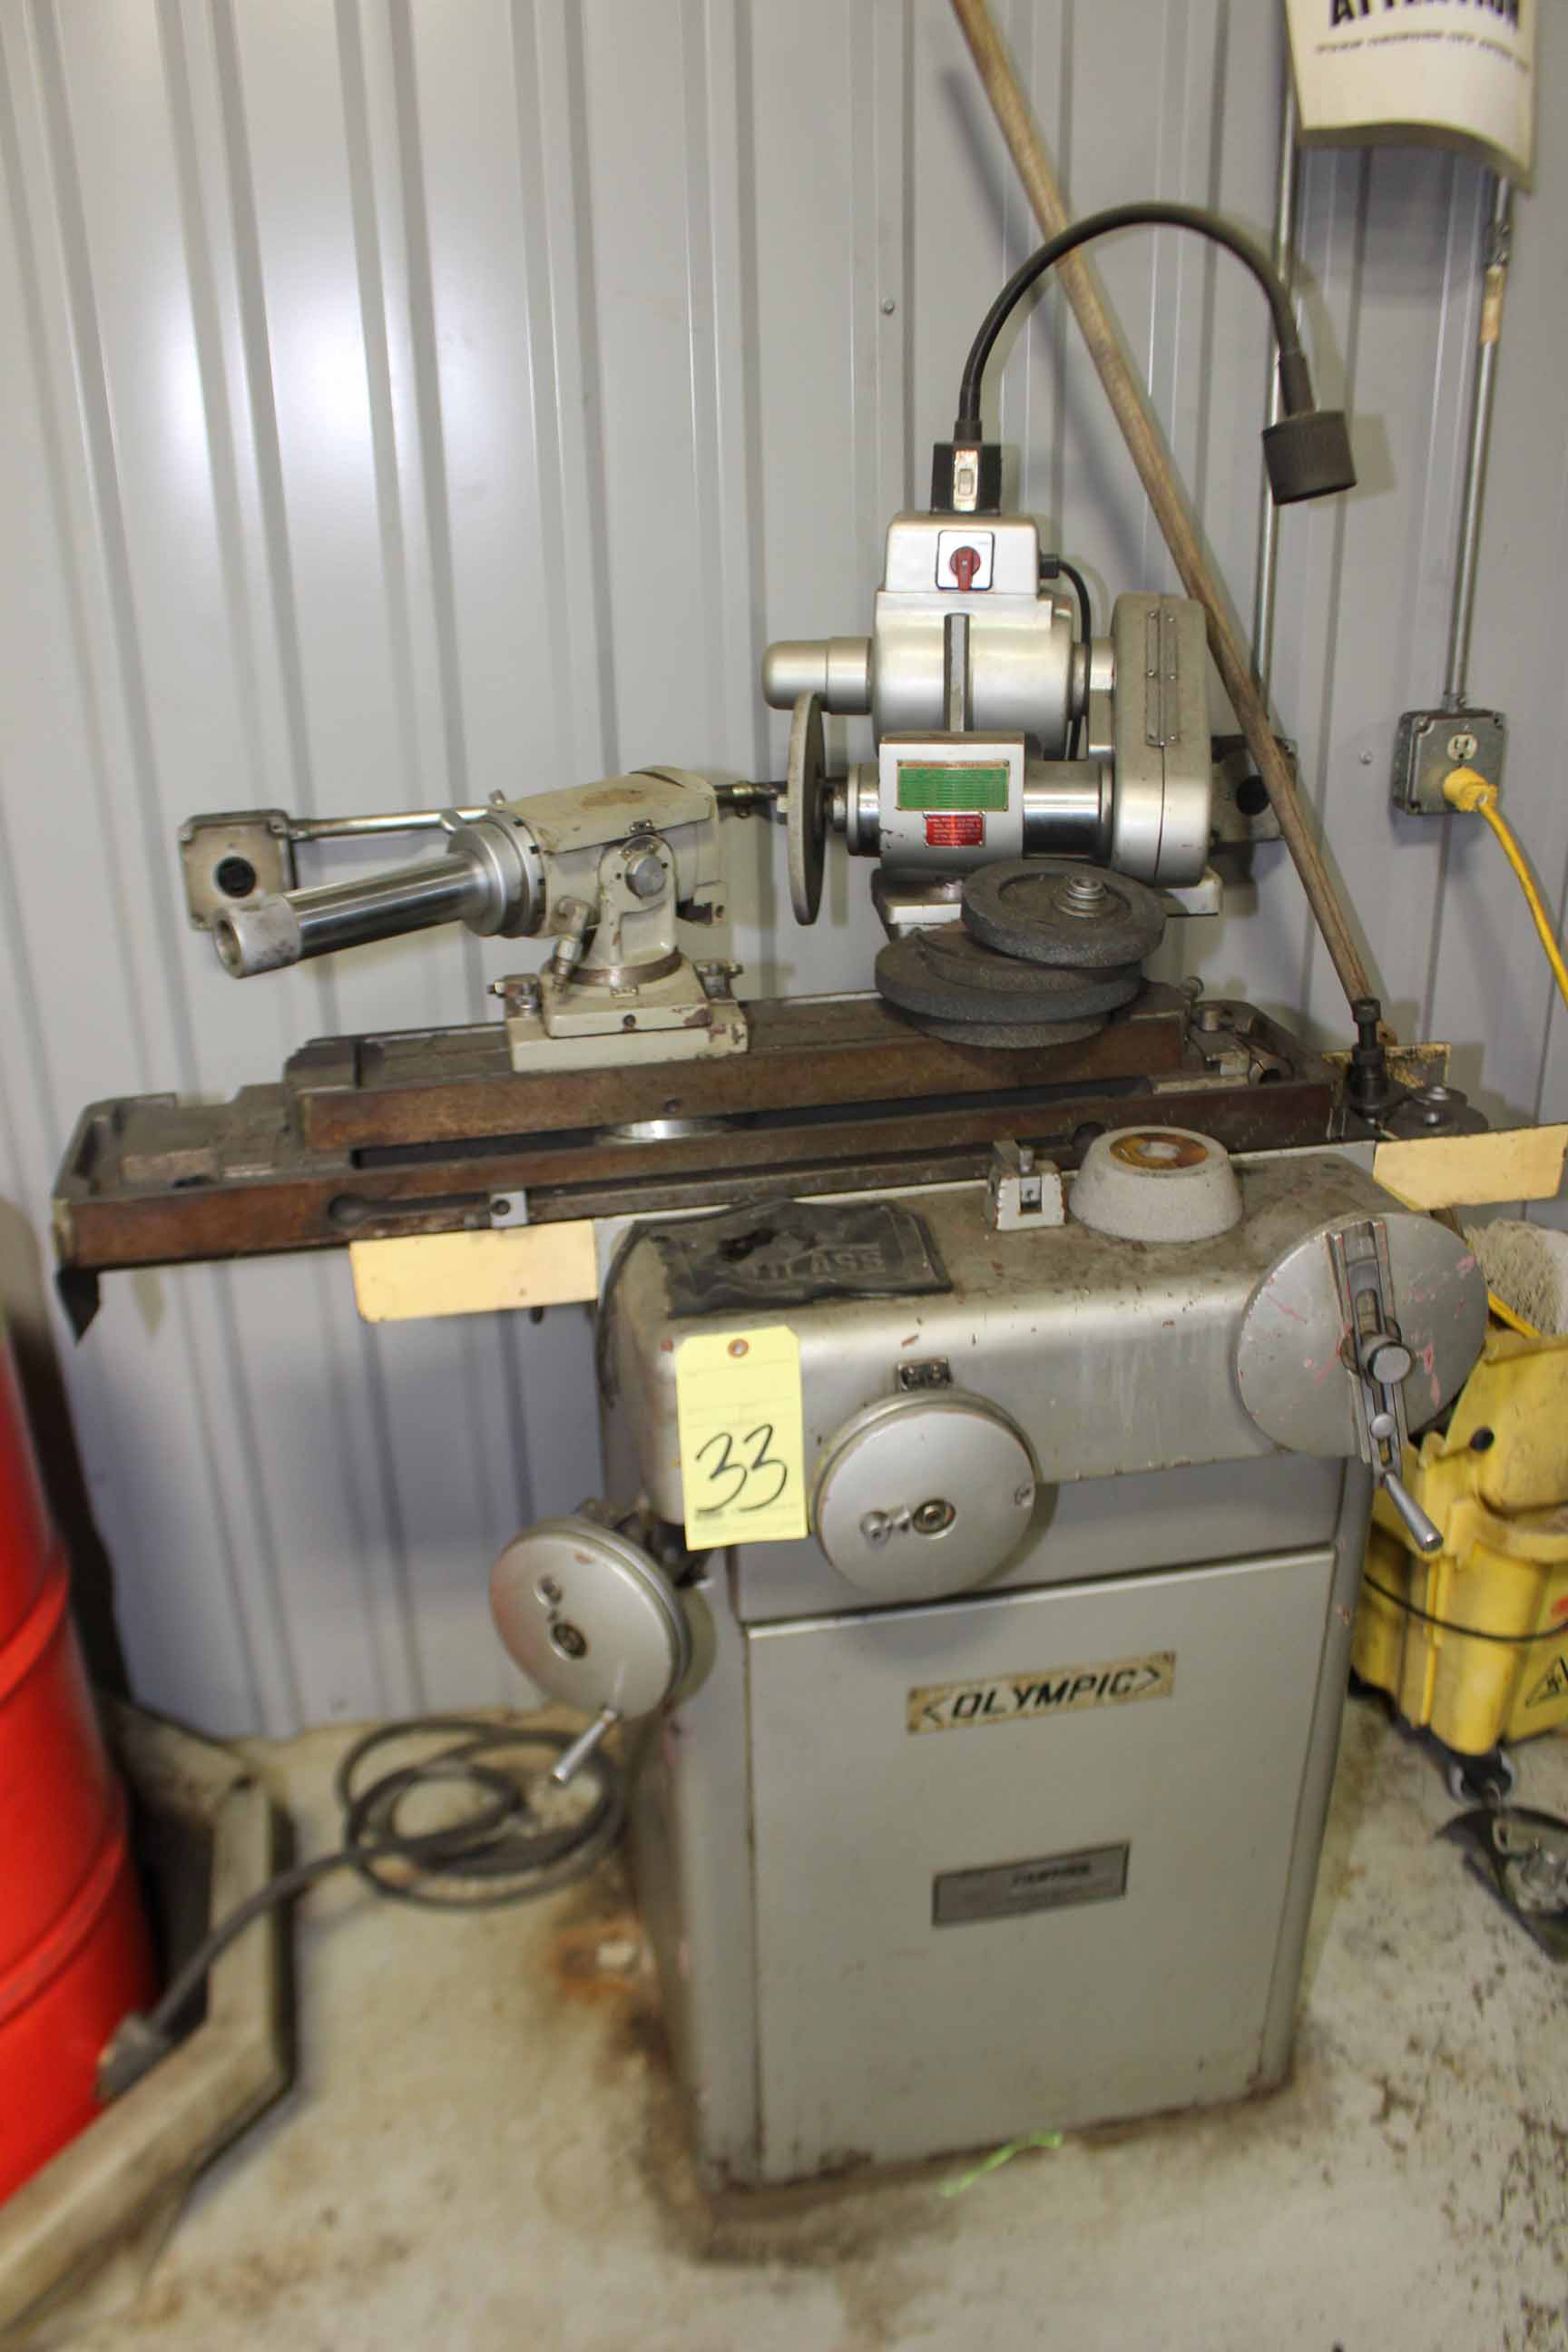 Lot 33 - TOOL & CUTTER GRINDER, OLYMPIC MDL. C-36-H, swivel spdl. head, air bearing endmill grinding fixture,